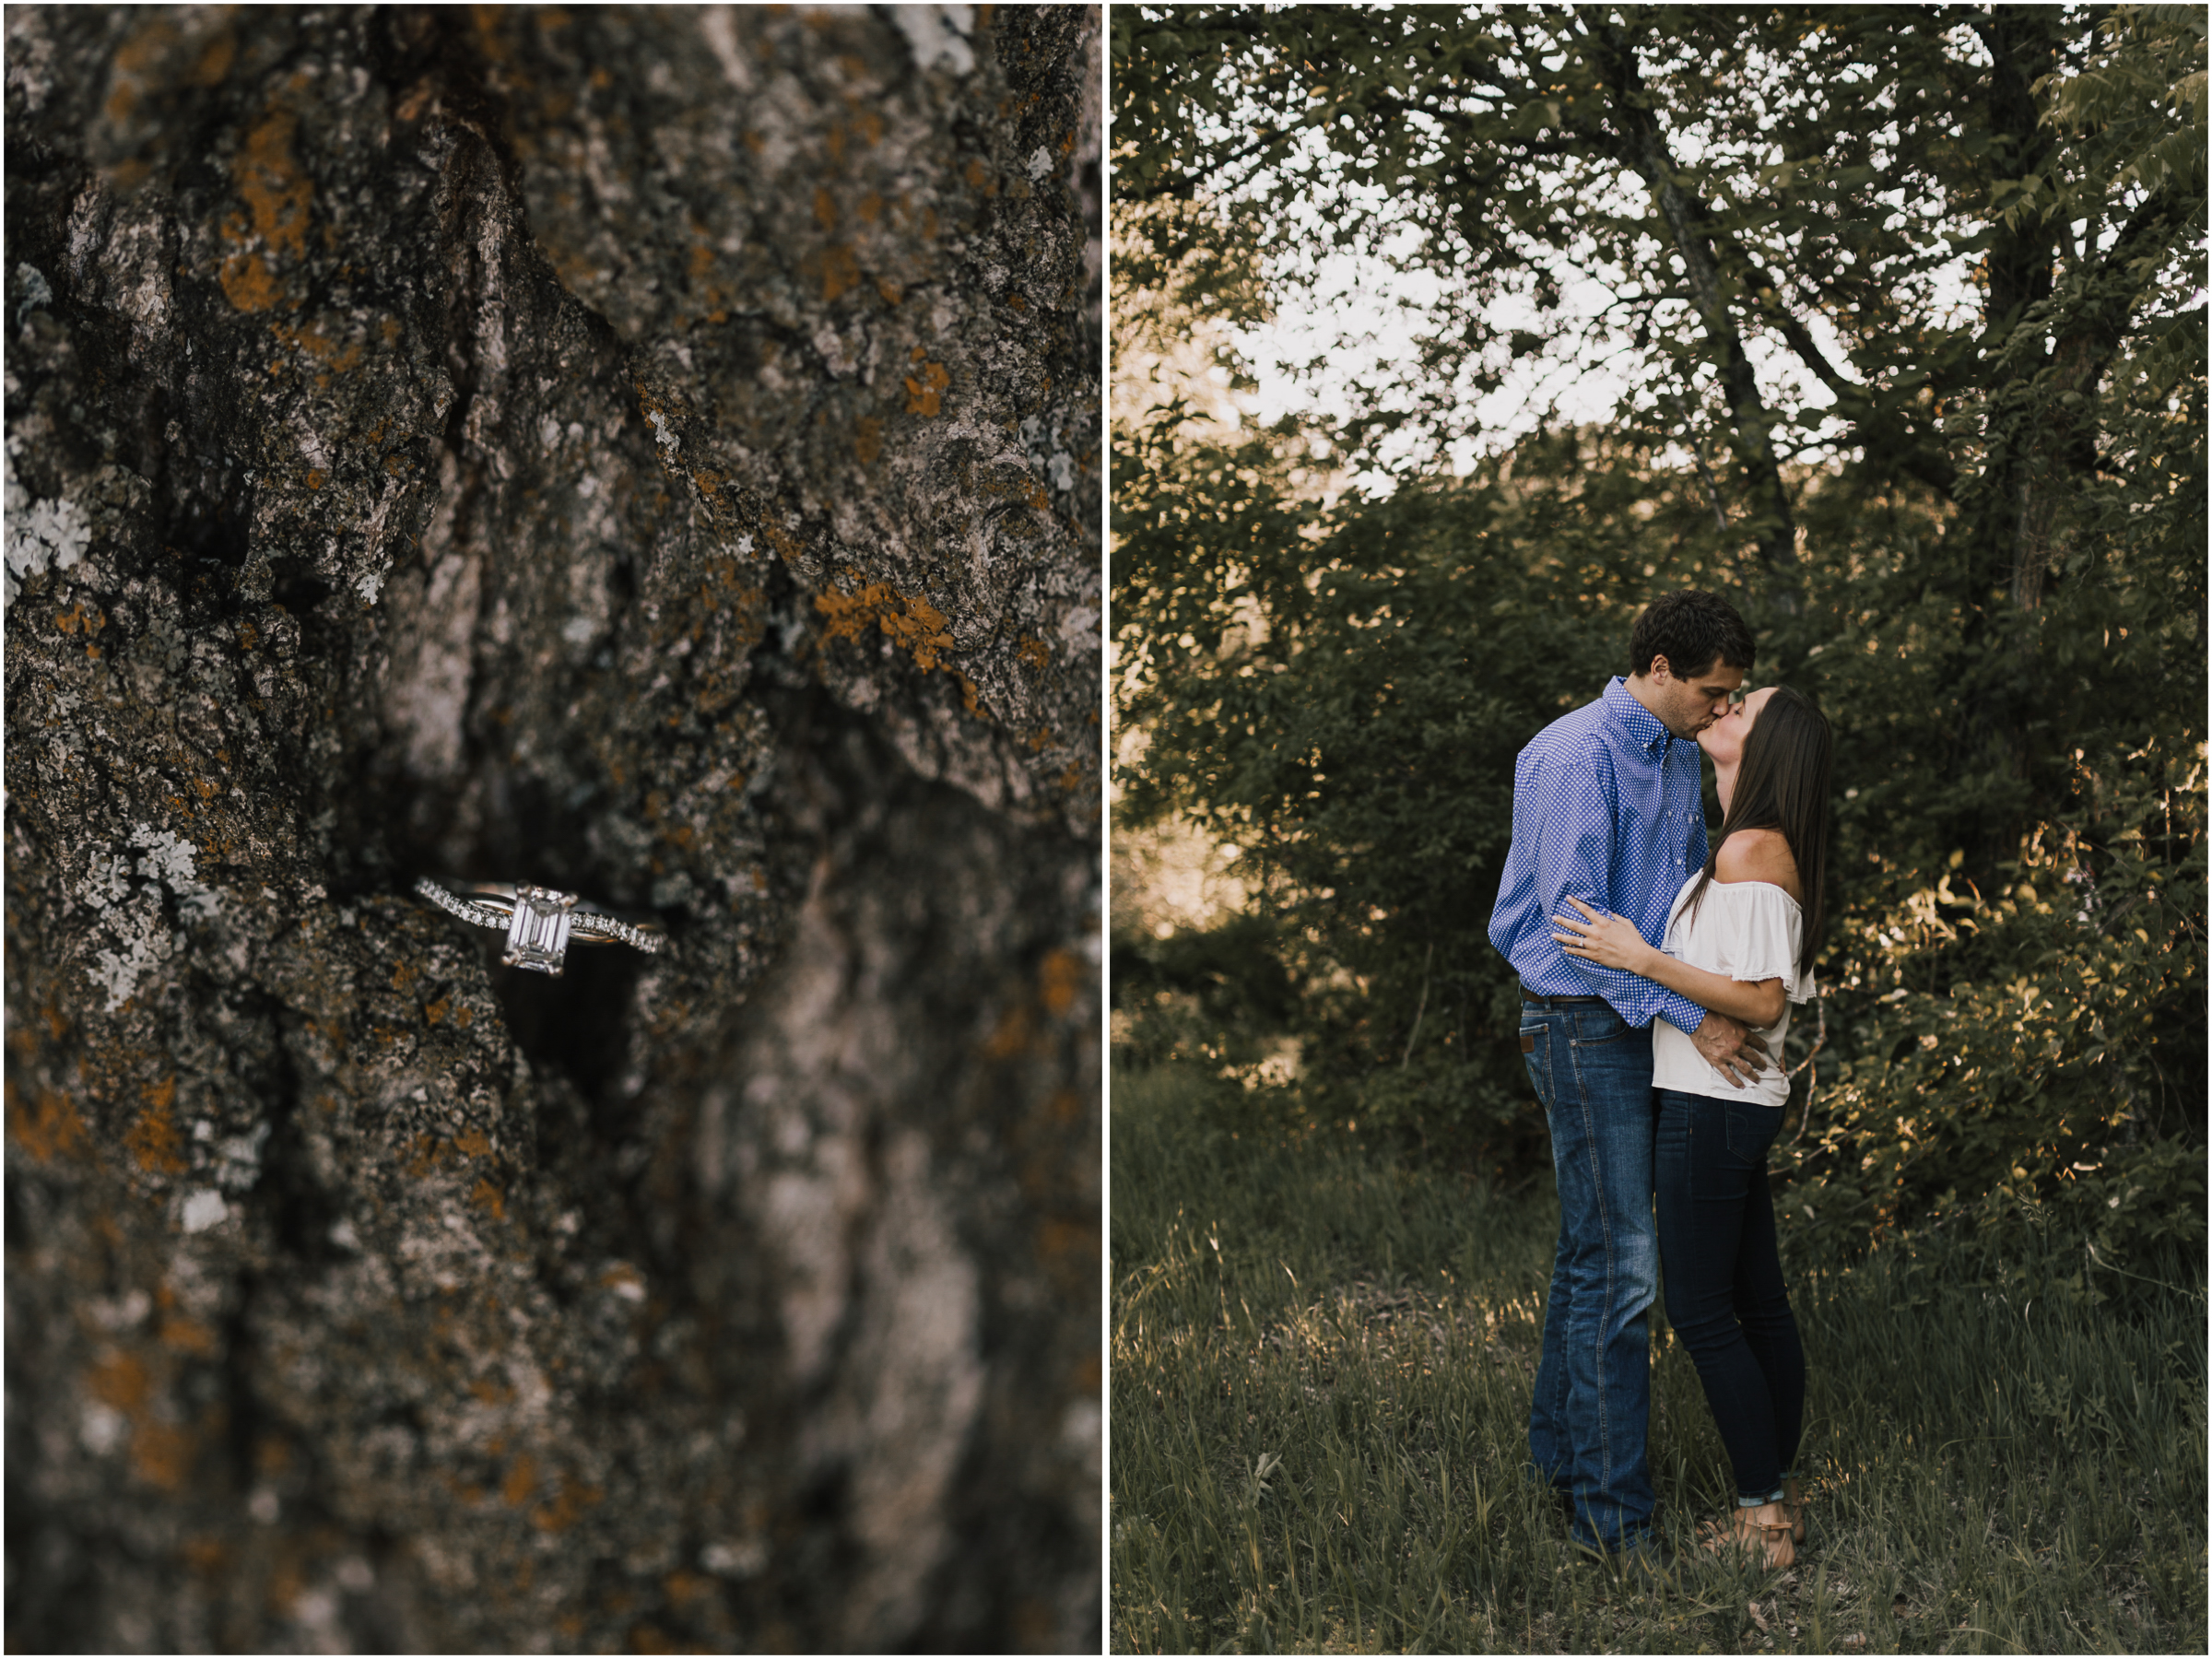 alyssa barletter photography shawnee mission park summer rustic done right engagement session-12.jpg